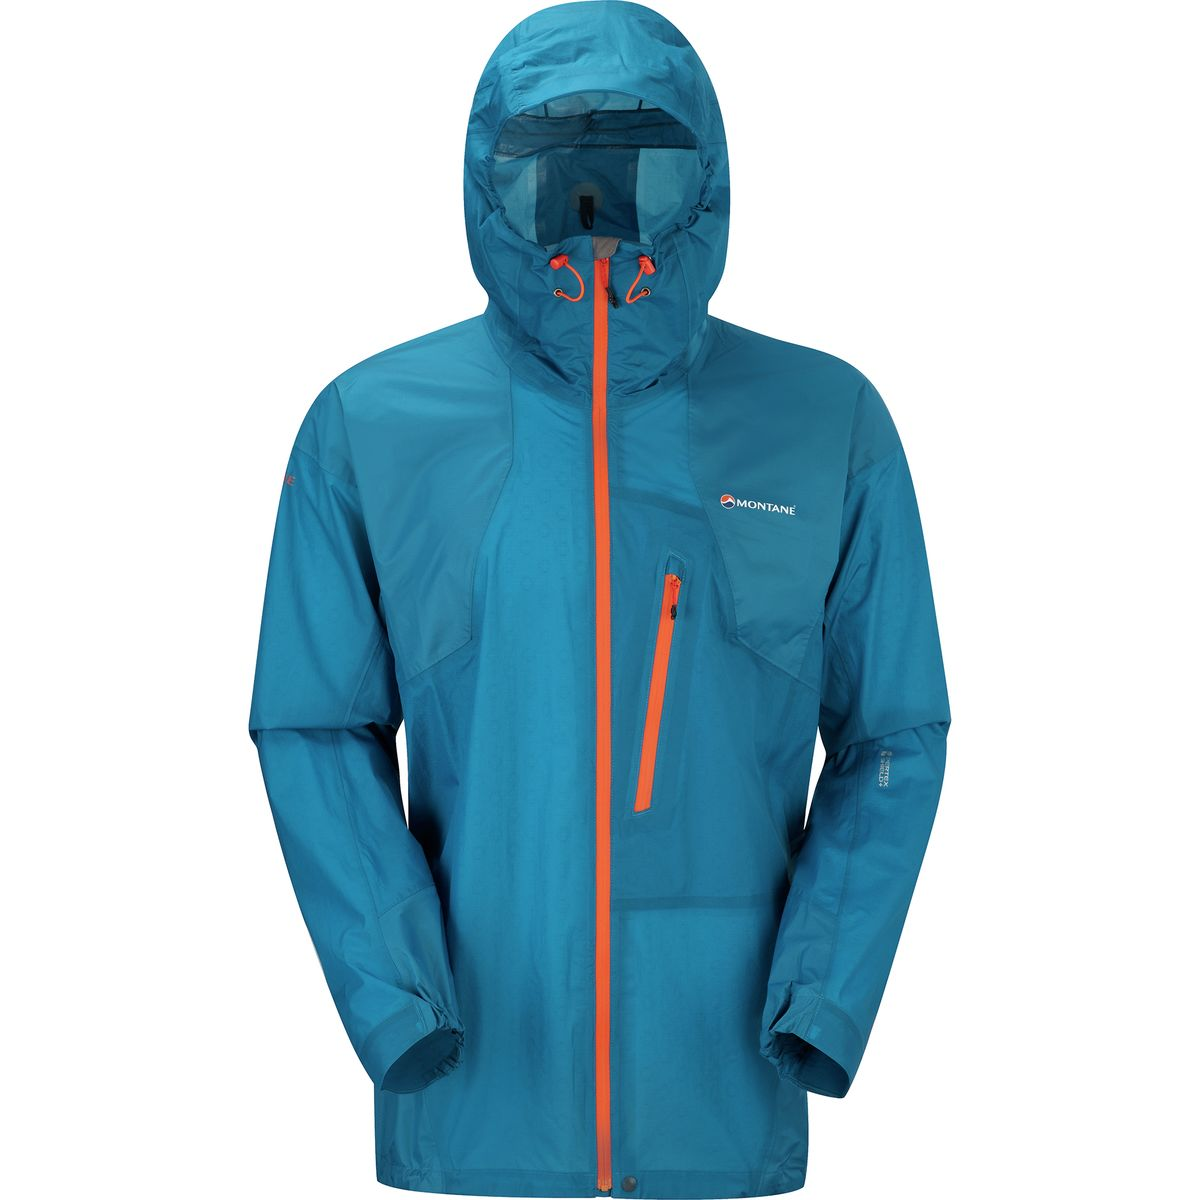 Montane Minimus Grand Tour Jacket